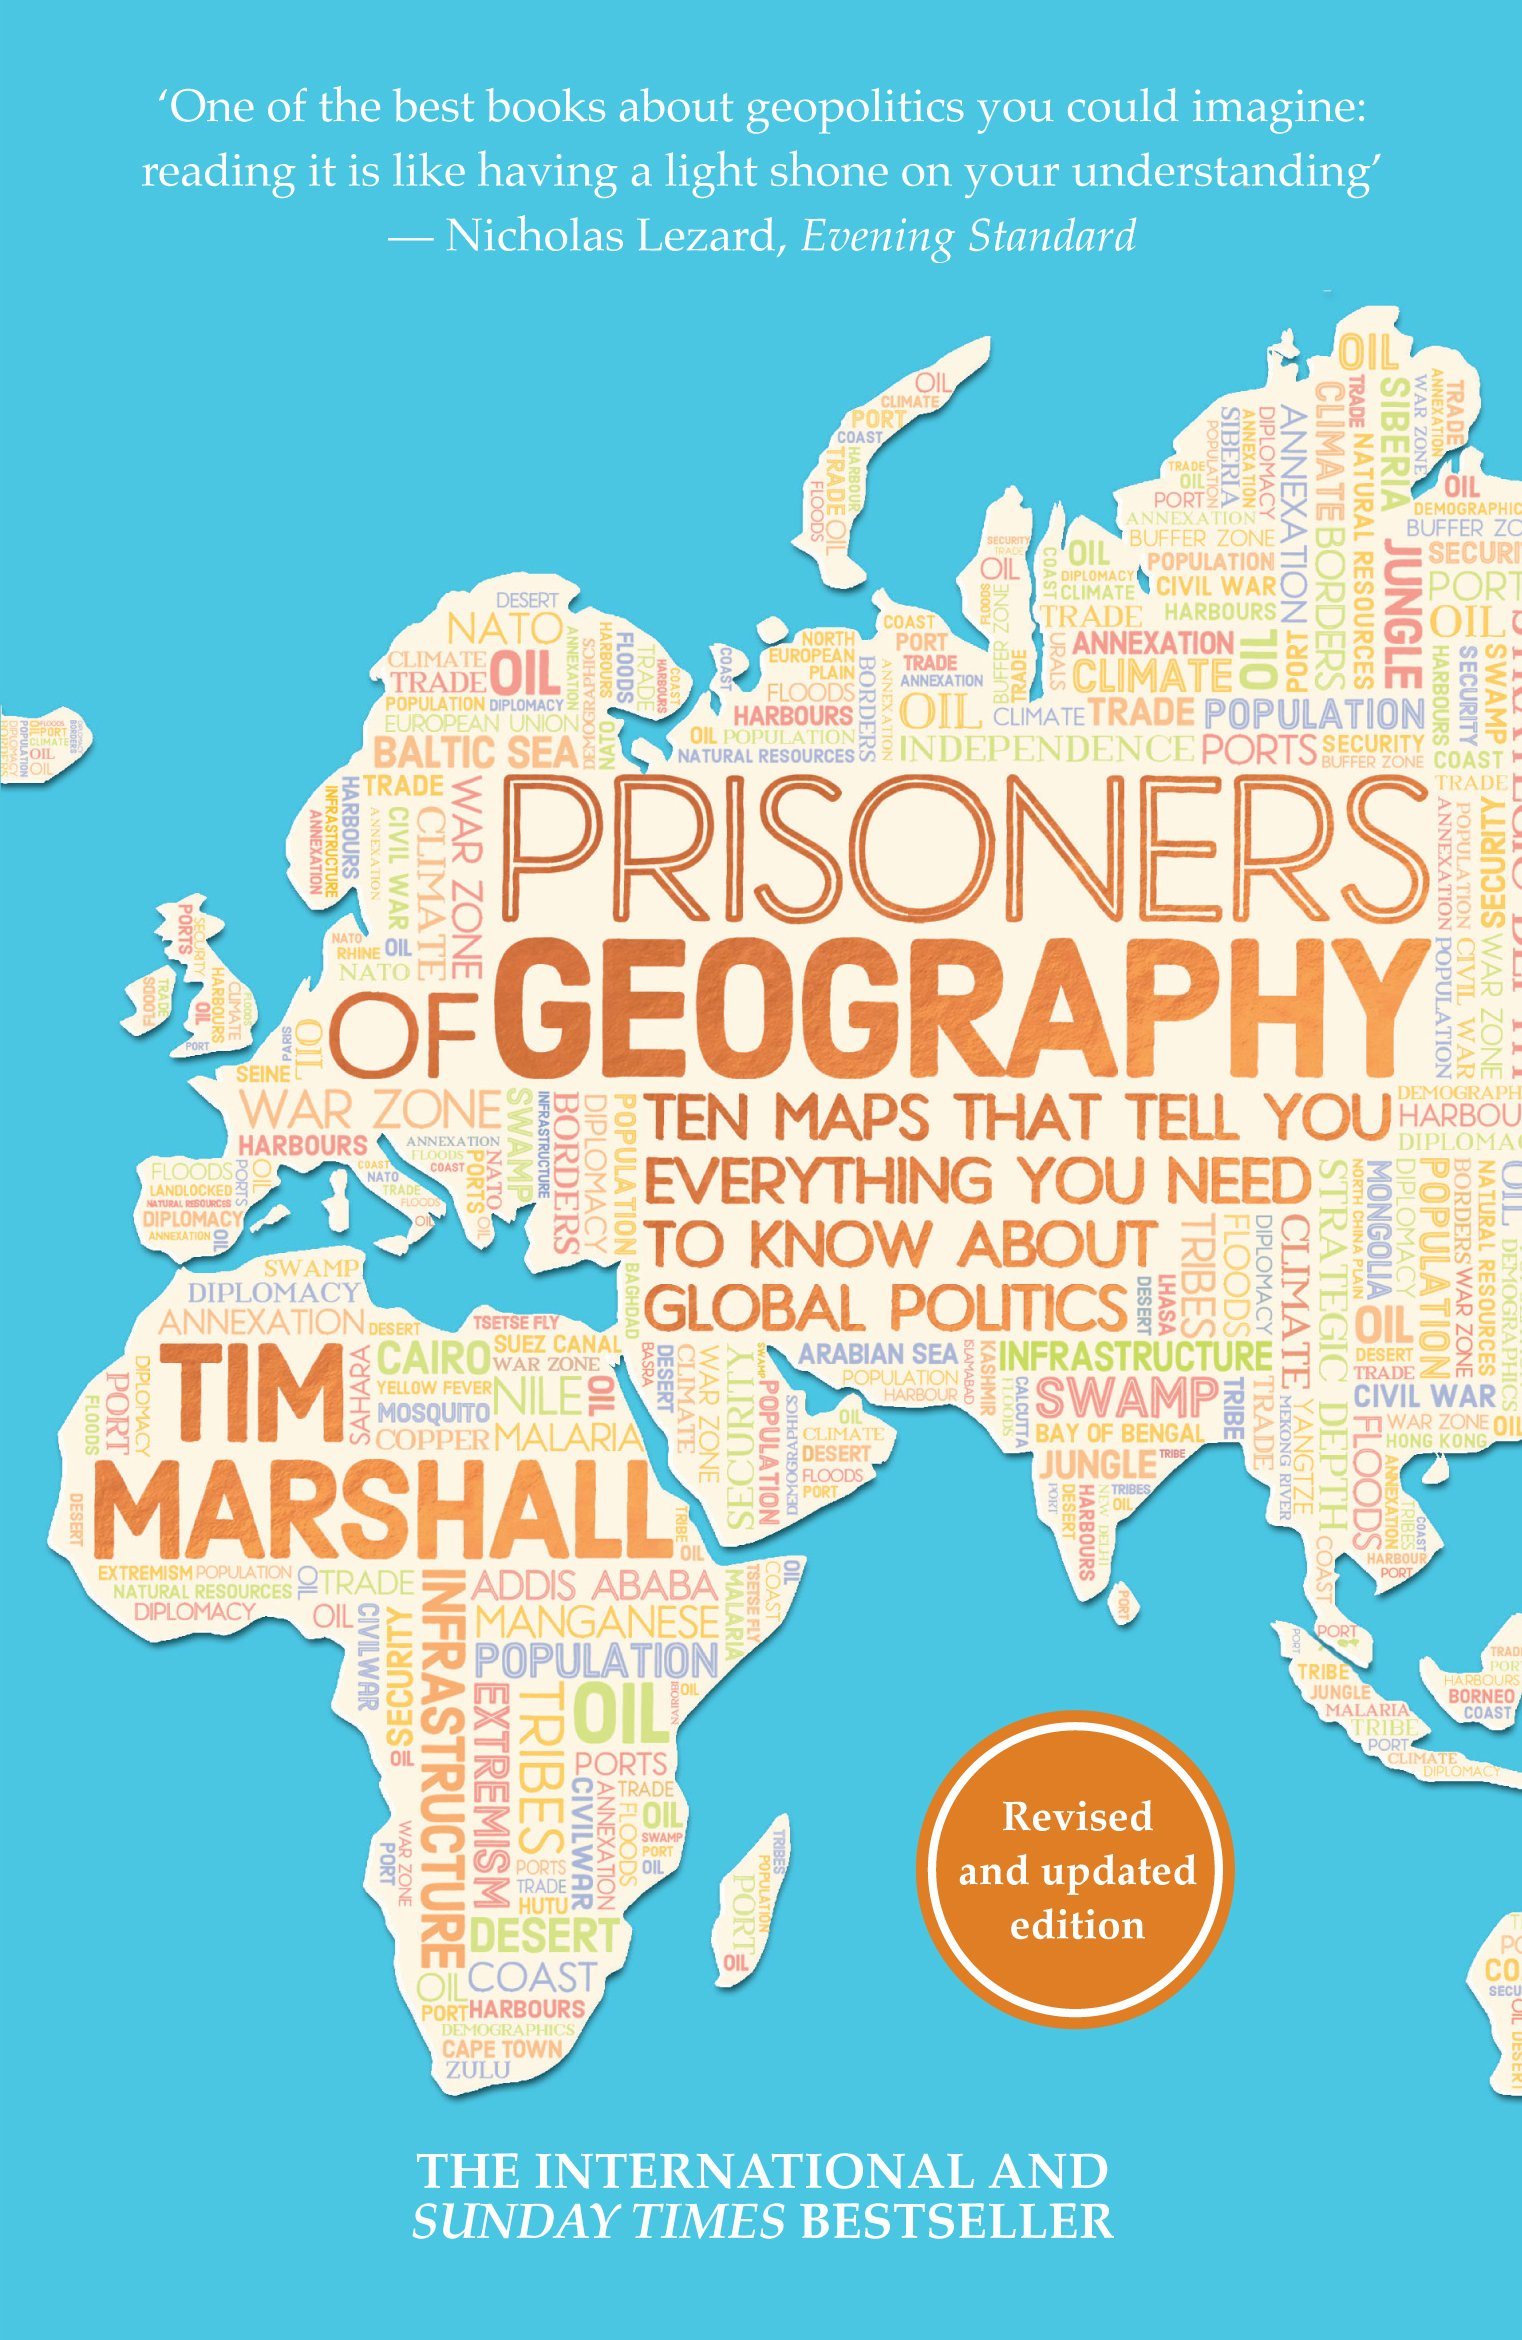 Prisoners of geography ten maps that tell you everything you need prisoners of geography ten maps that tell you everything you need to know about global politics tim marshall 9781783962433 amazon books gumiabroncs Choice Image